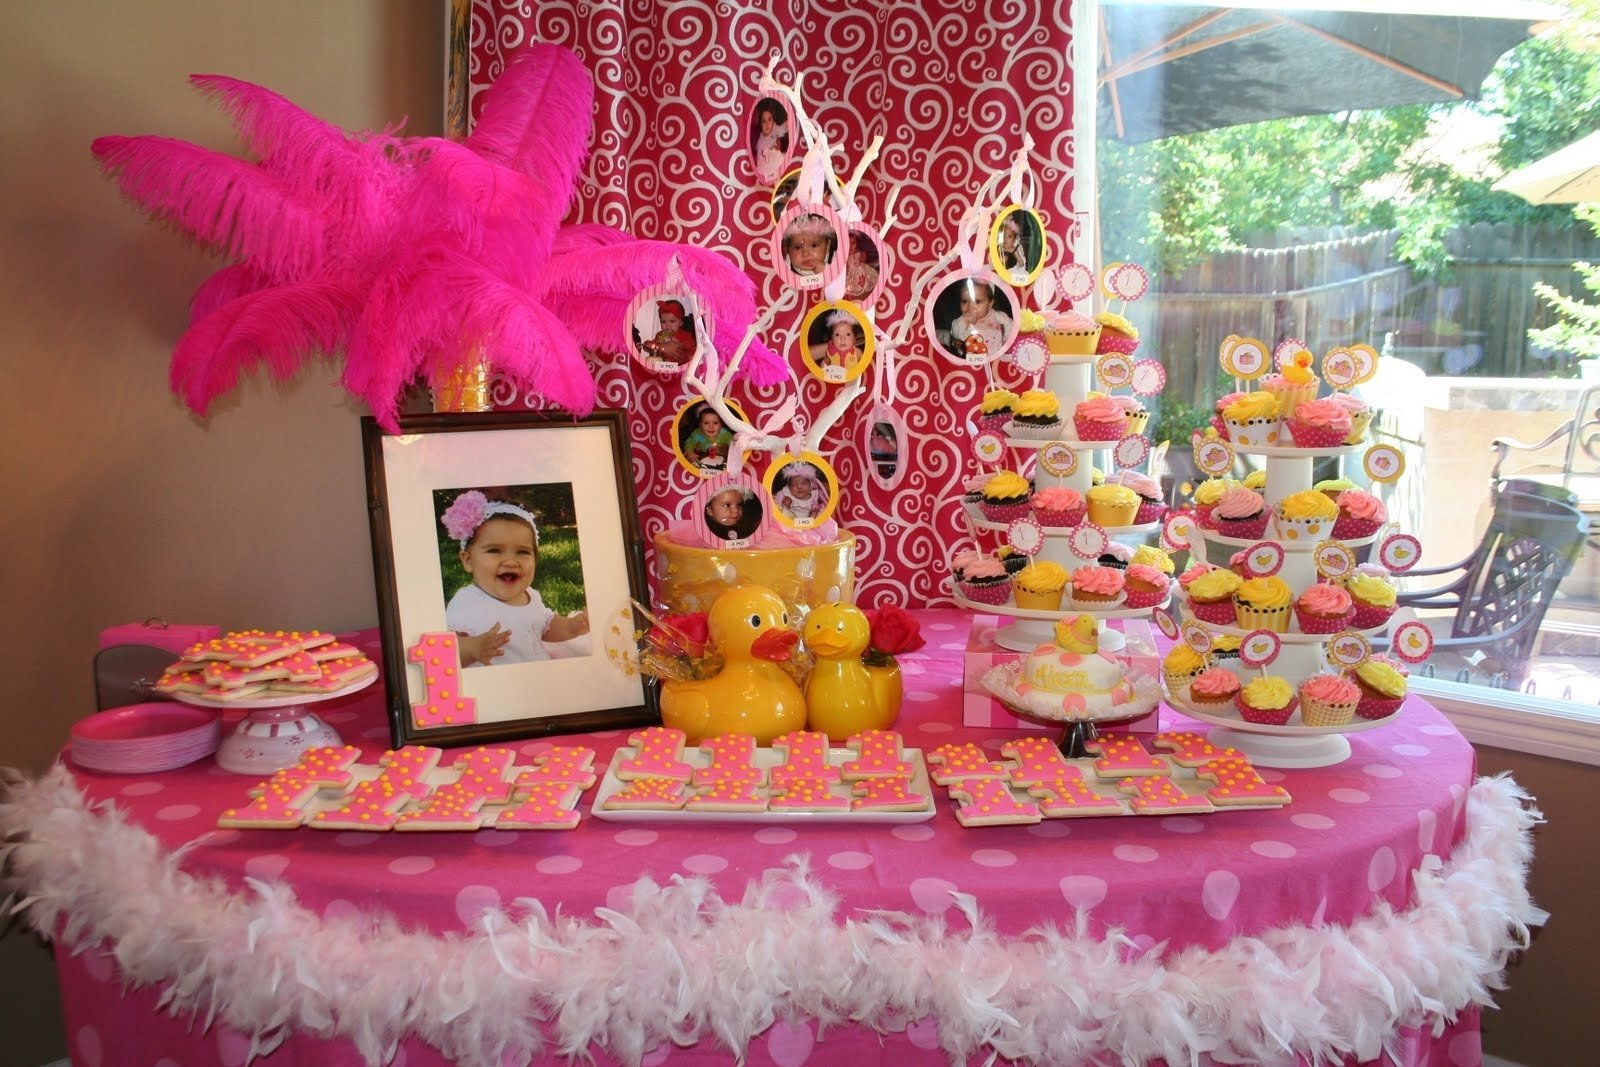 10 Unique Birthday Party Ideas For Boys Age 7 amazing tips and ideas for exciting celebrations of birthday parties 1 2020